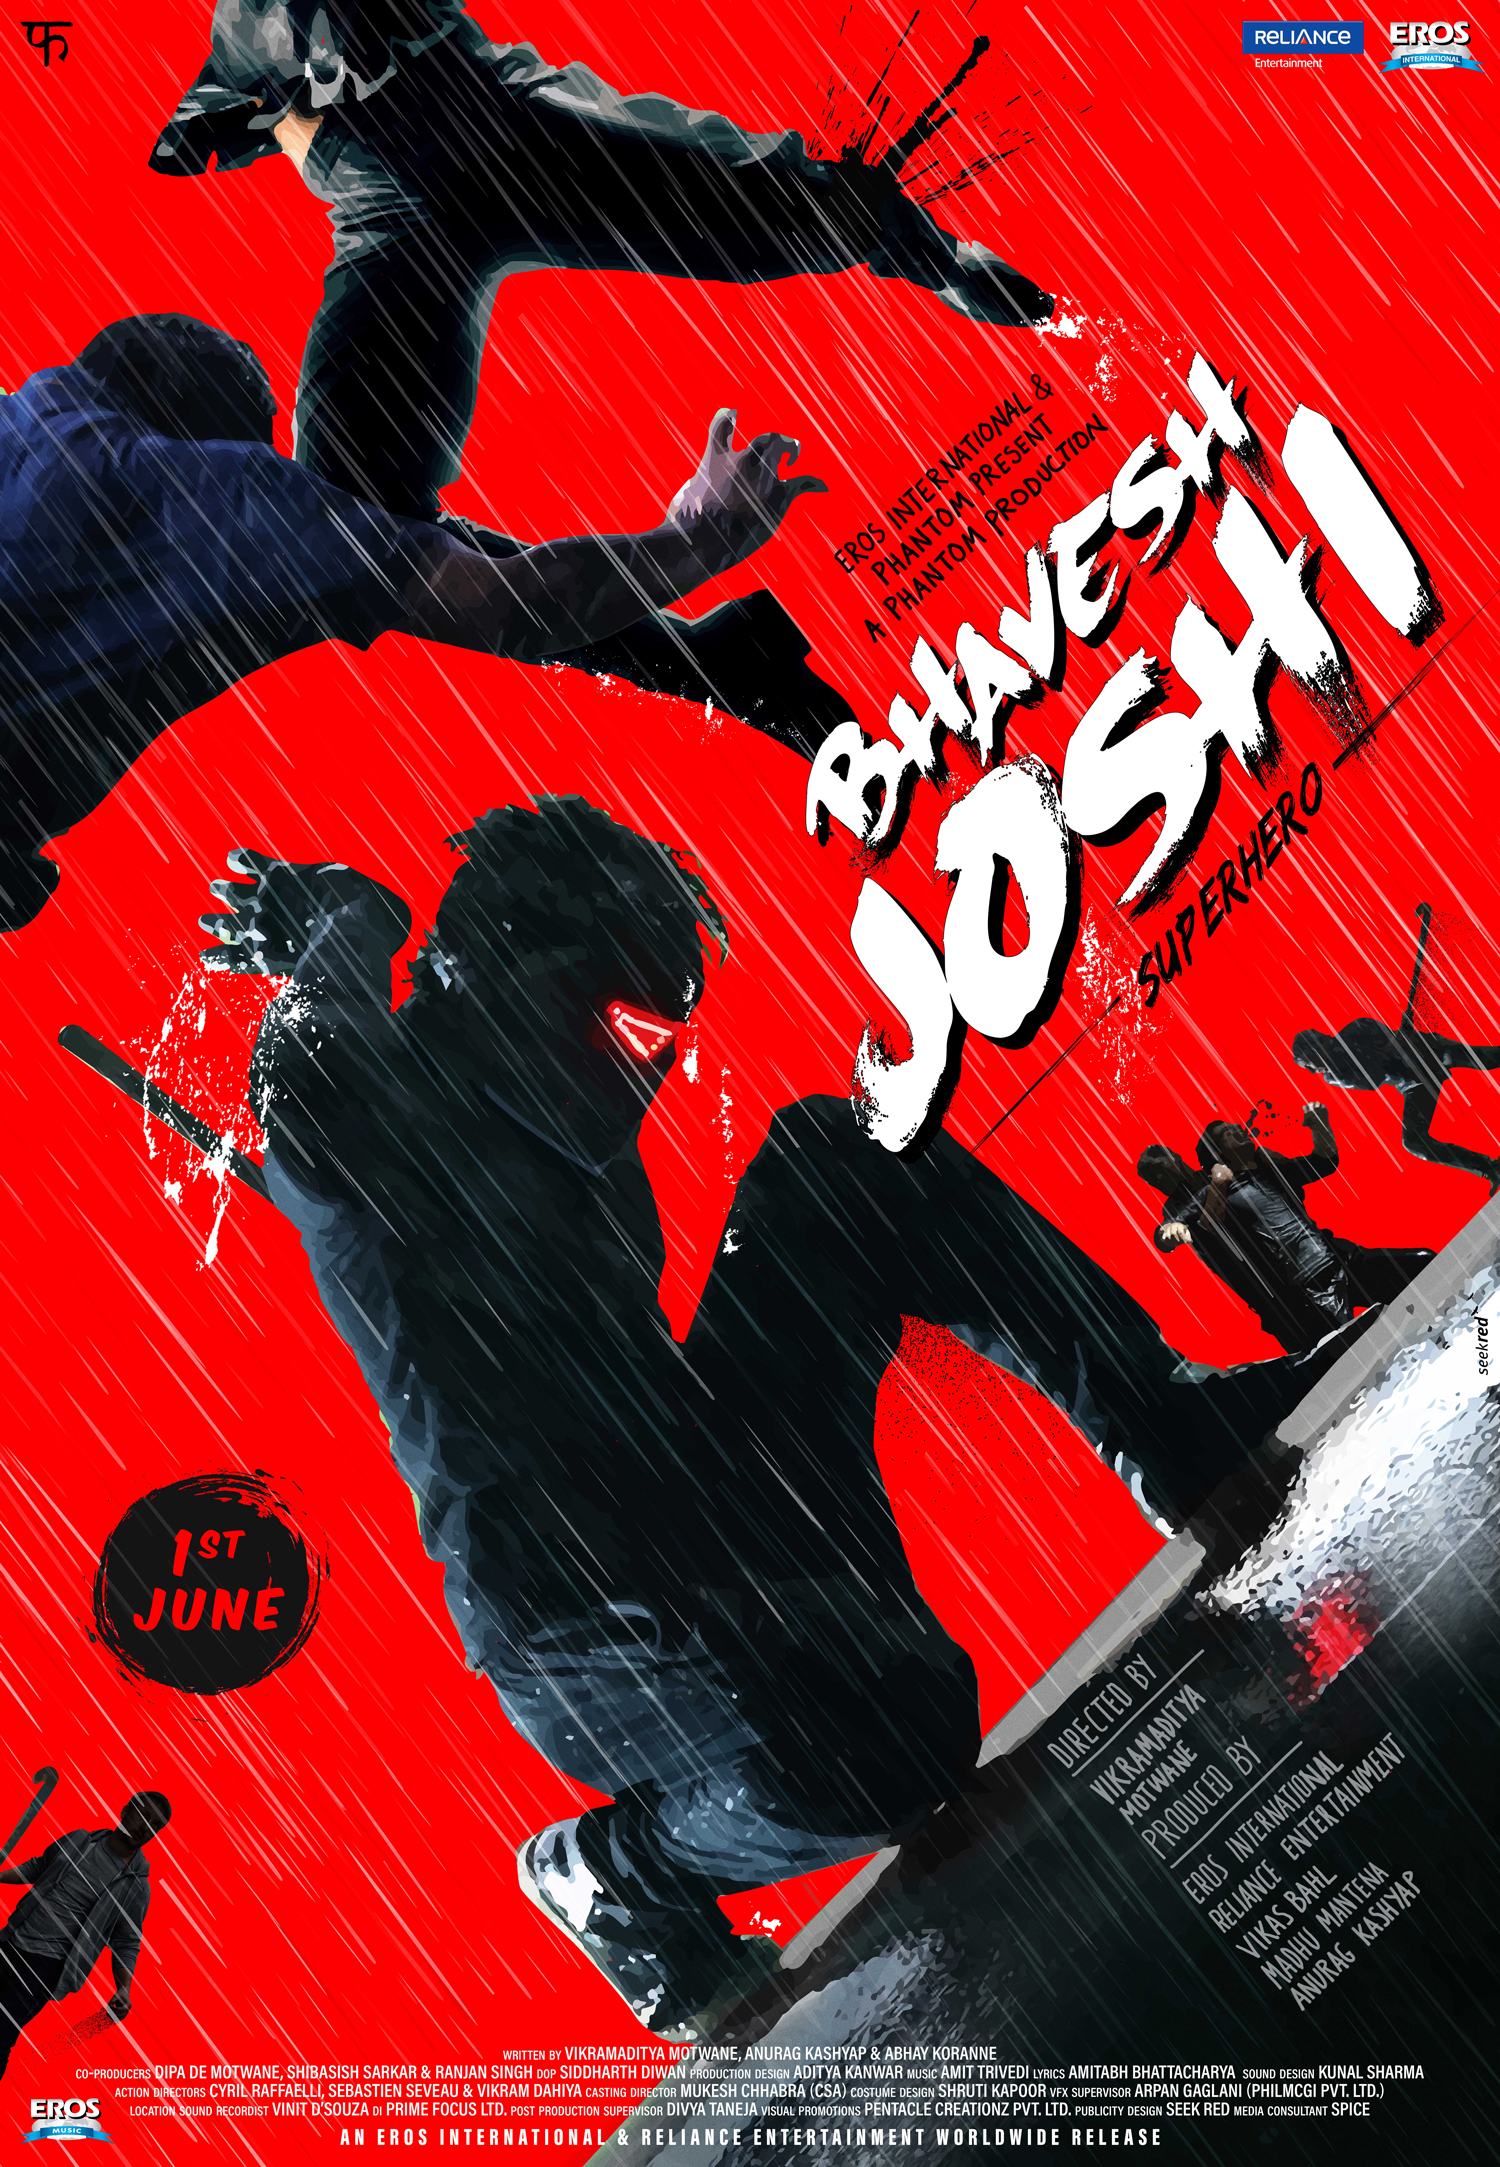 Bhavesh Joshi Superhero - Red poster #SeekRed